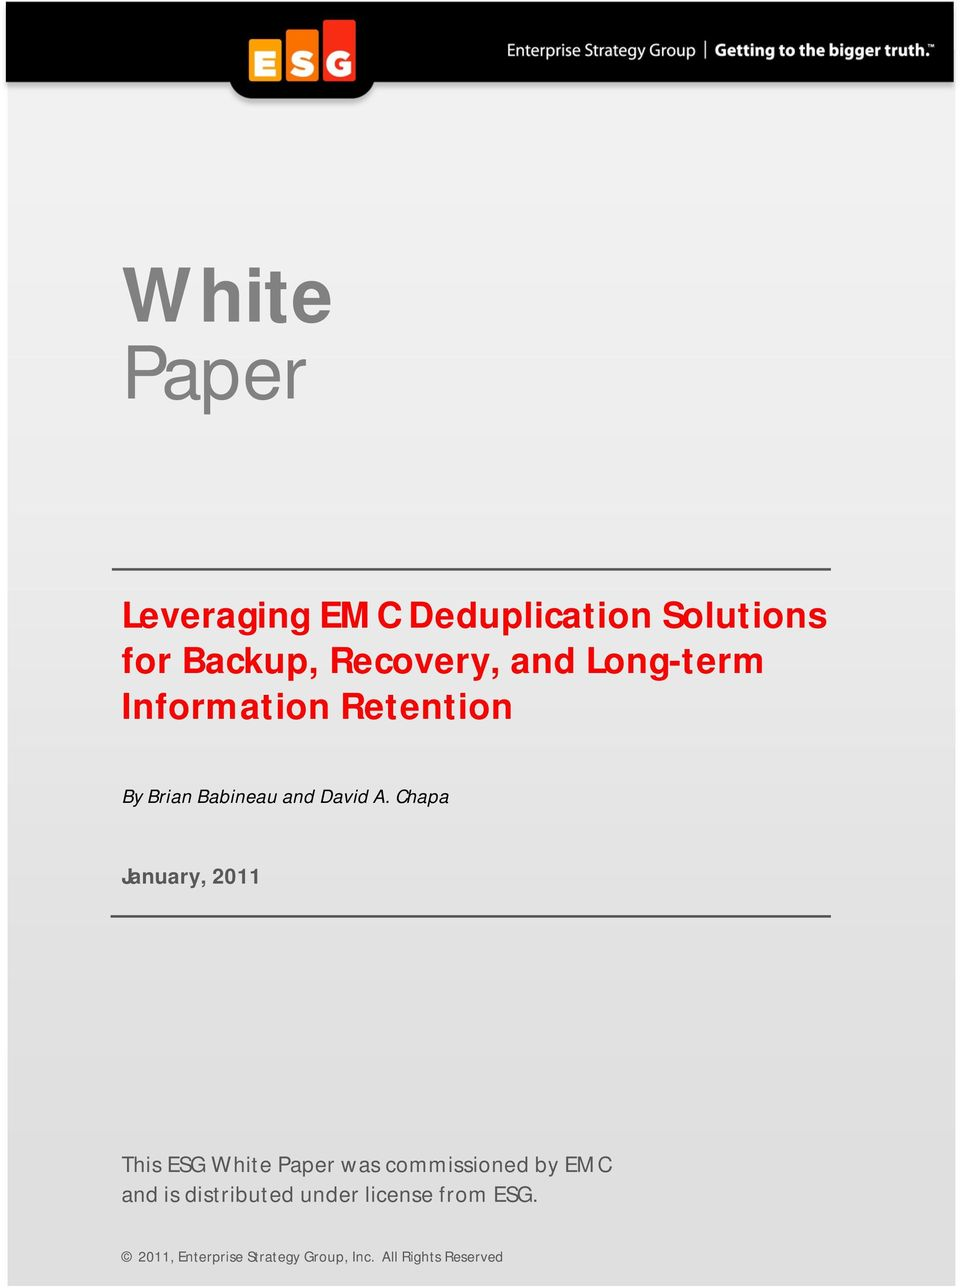 Chapa January, 2011 This ESG White Paper was commissioned by EMC and is